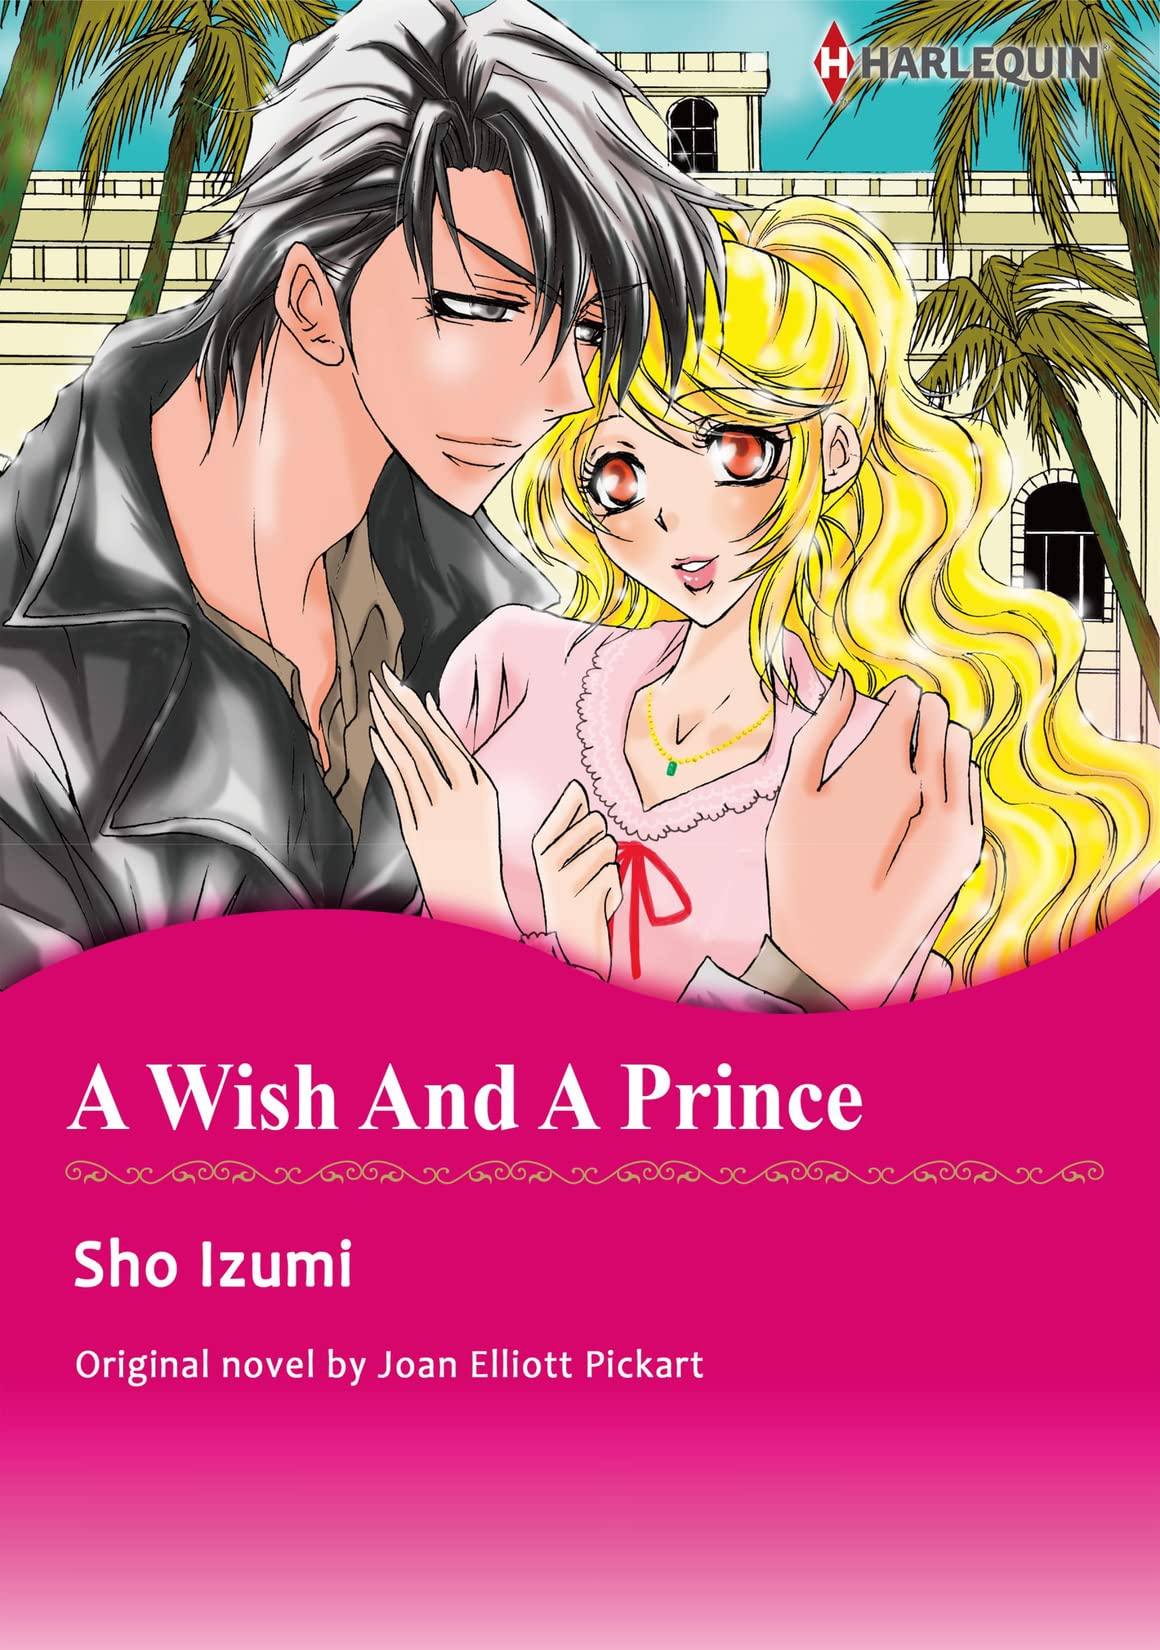 A Wish And A Prince